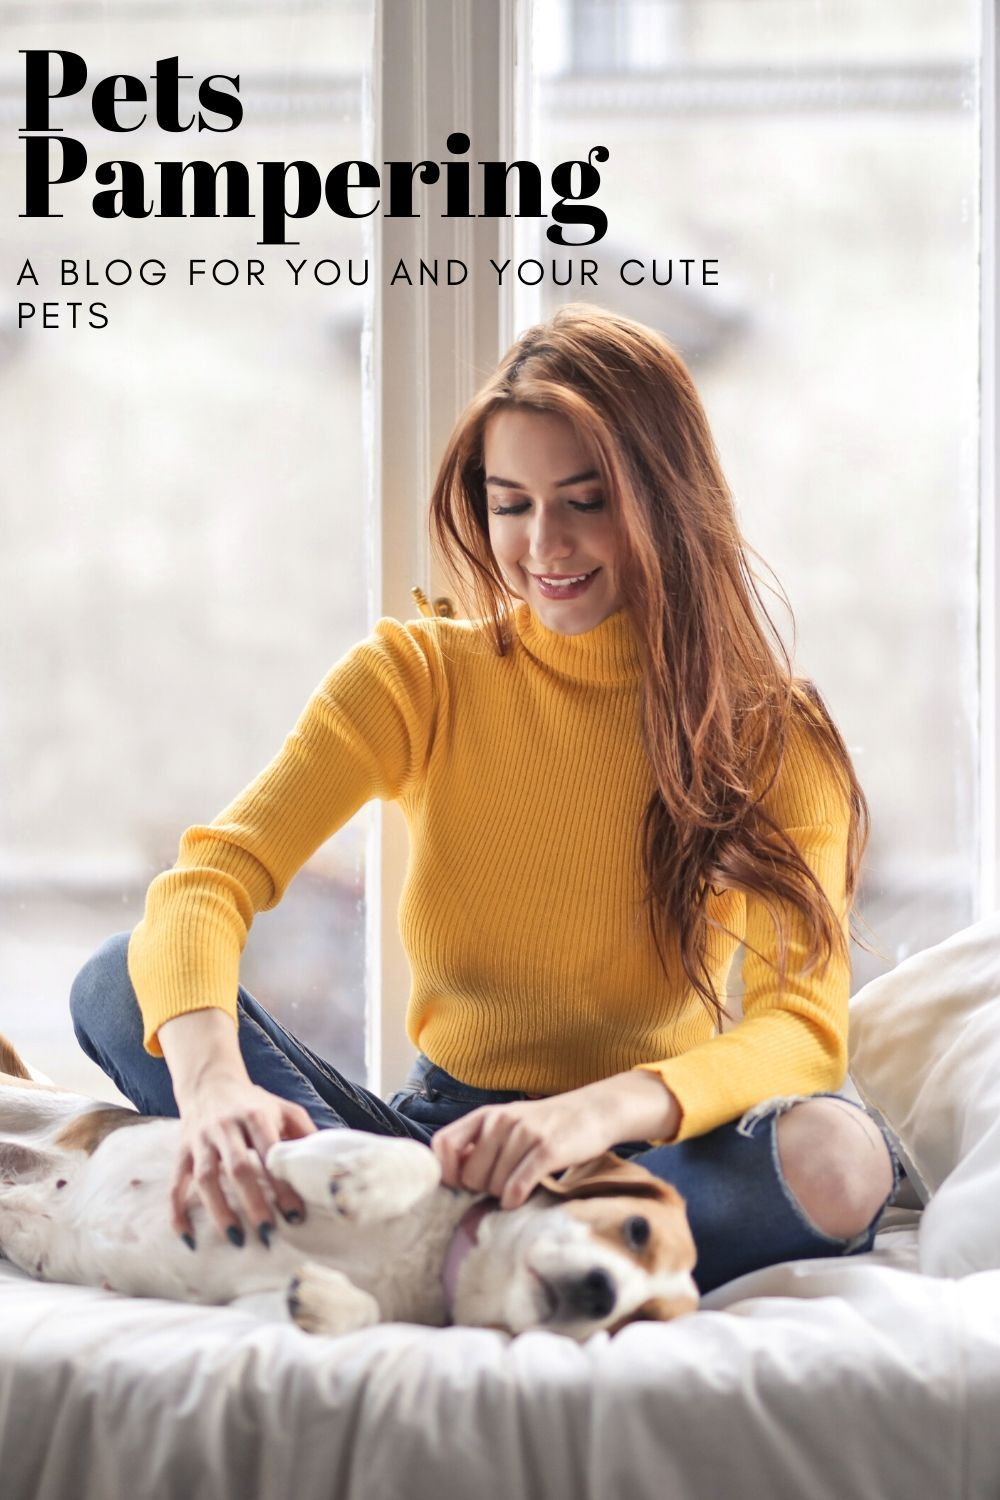 Pets Pampering- A Blog For You And Your Cute Pets #pets #petstagram #petsofinstagram #petsagram #petsofig #petshop #petscorner #petsgram #petsitting #petsmart #petsitter #petsofinsta #petsoninstagram #petsarefamily